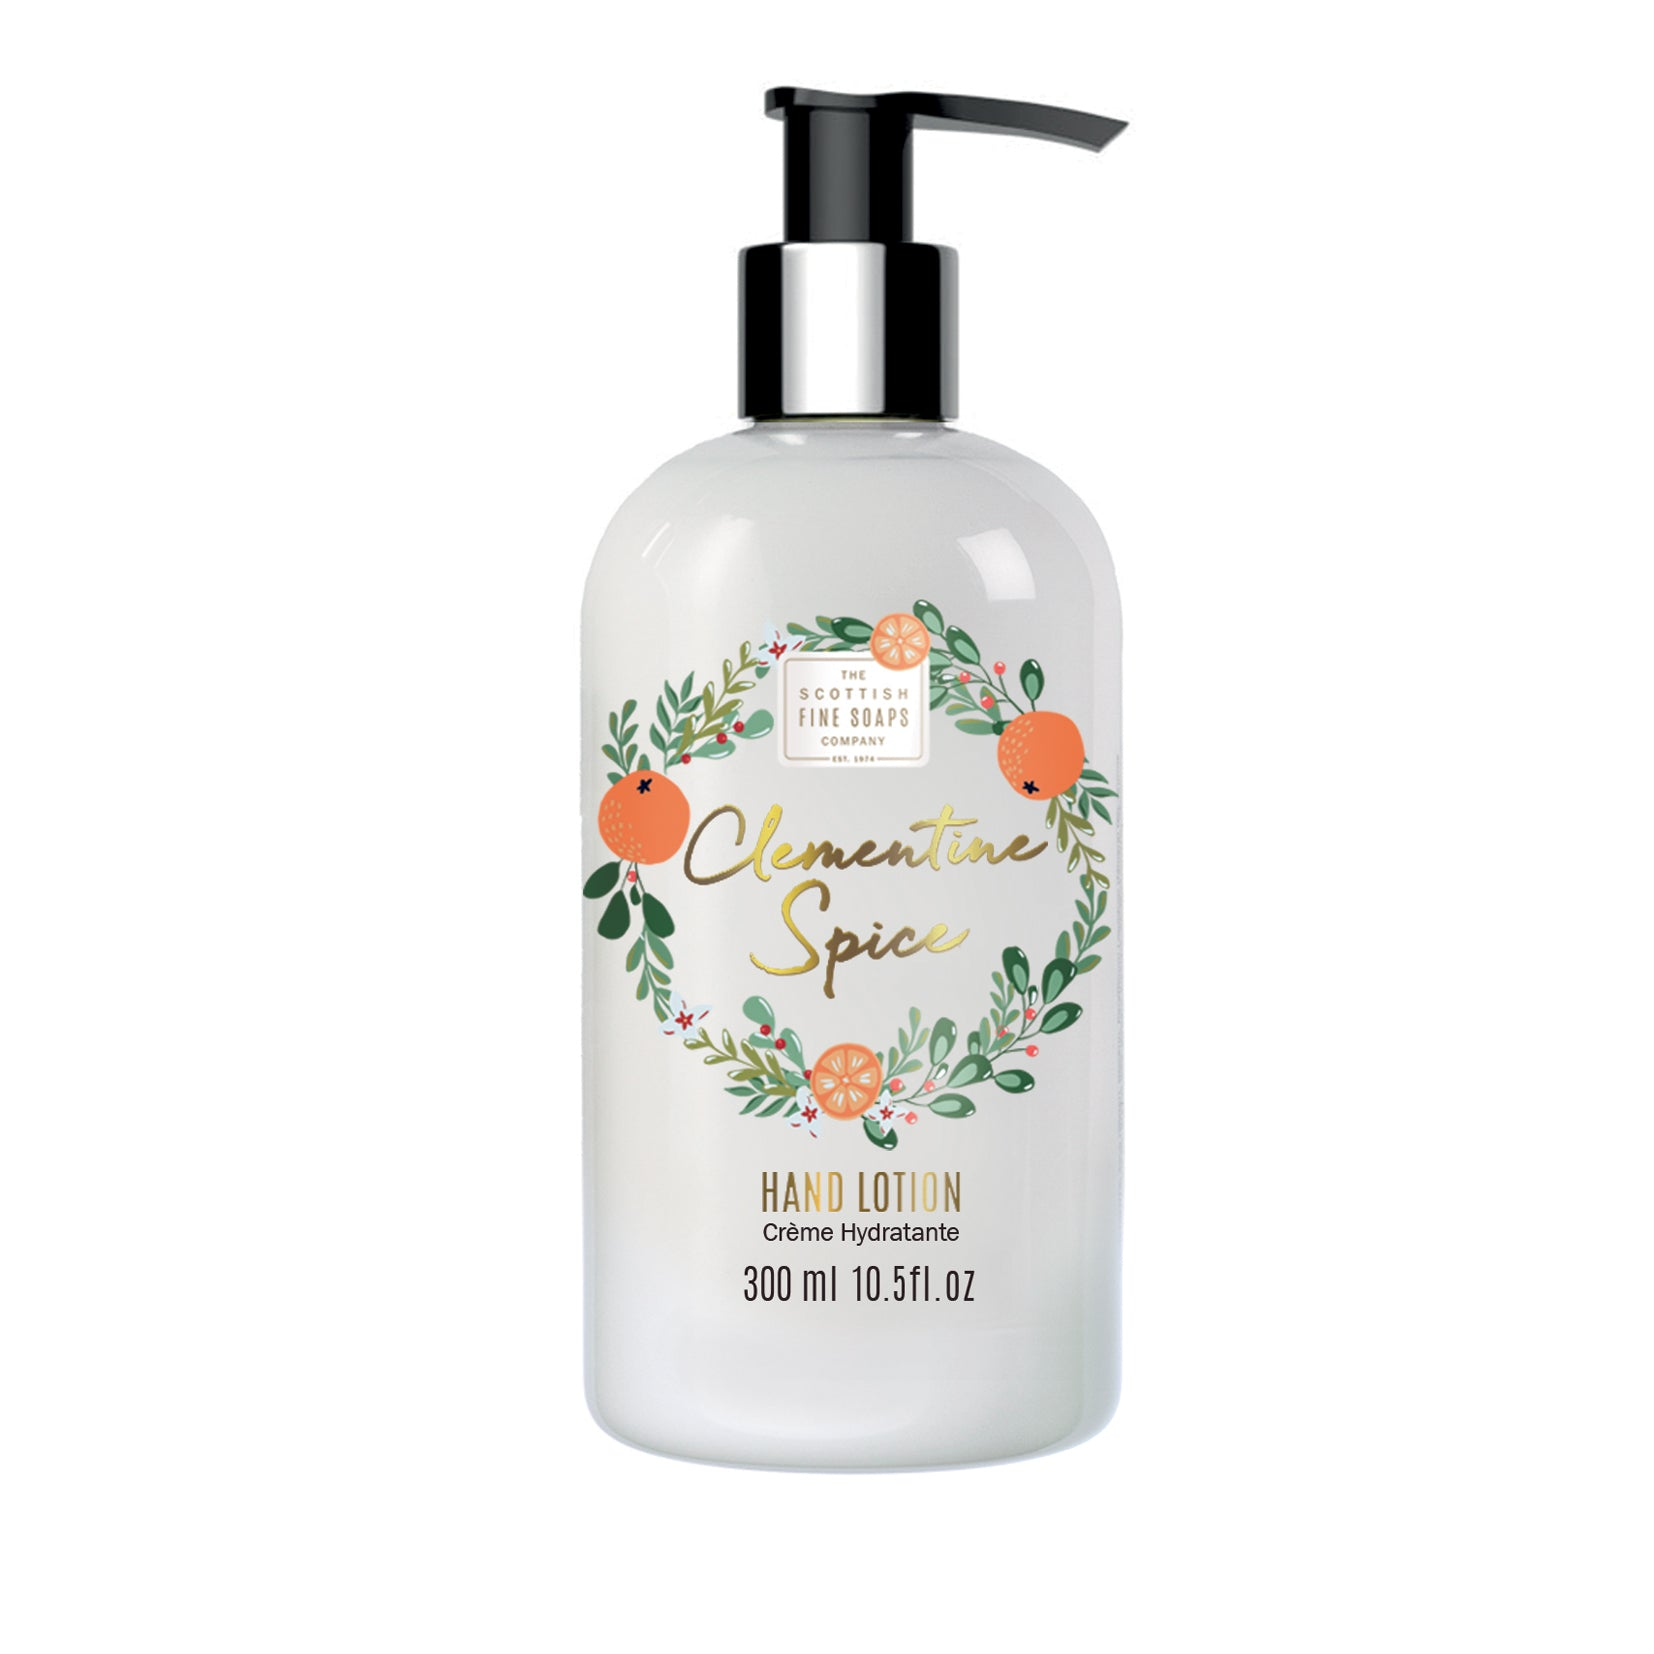 Clementine Spice Hand Lotion